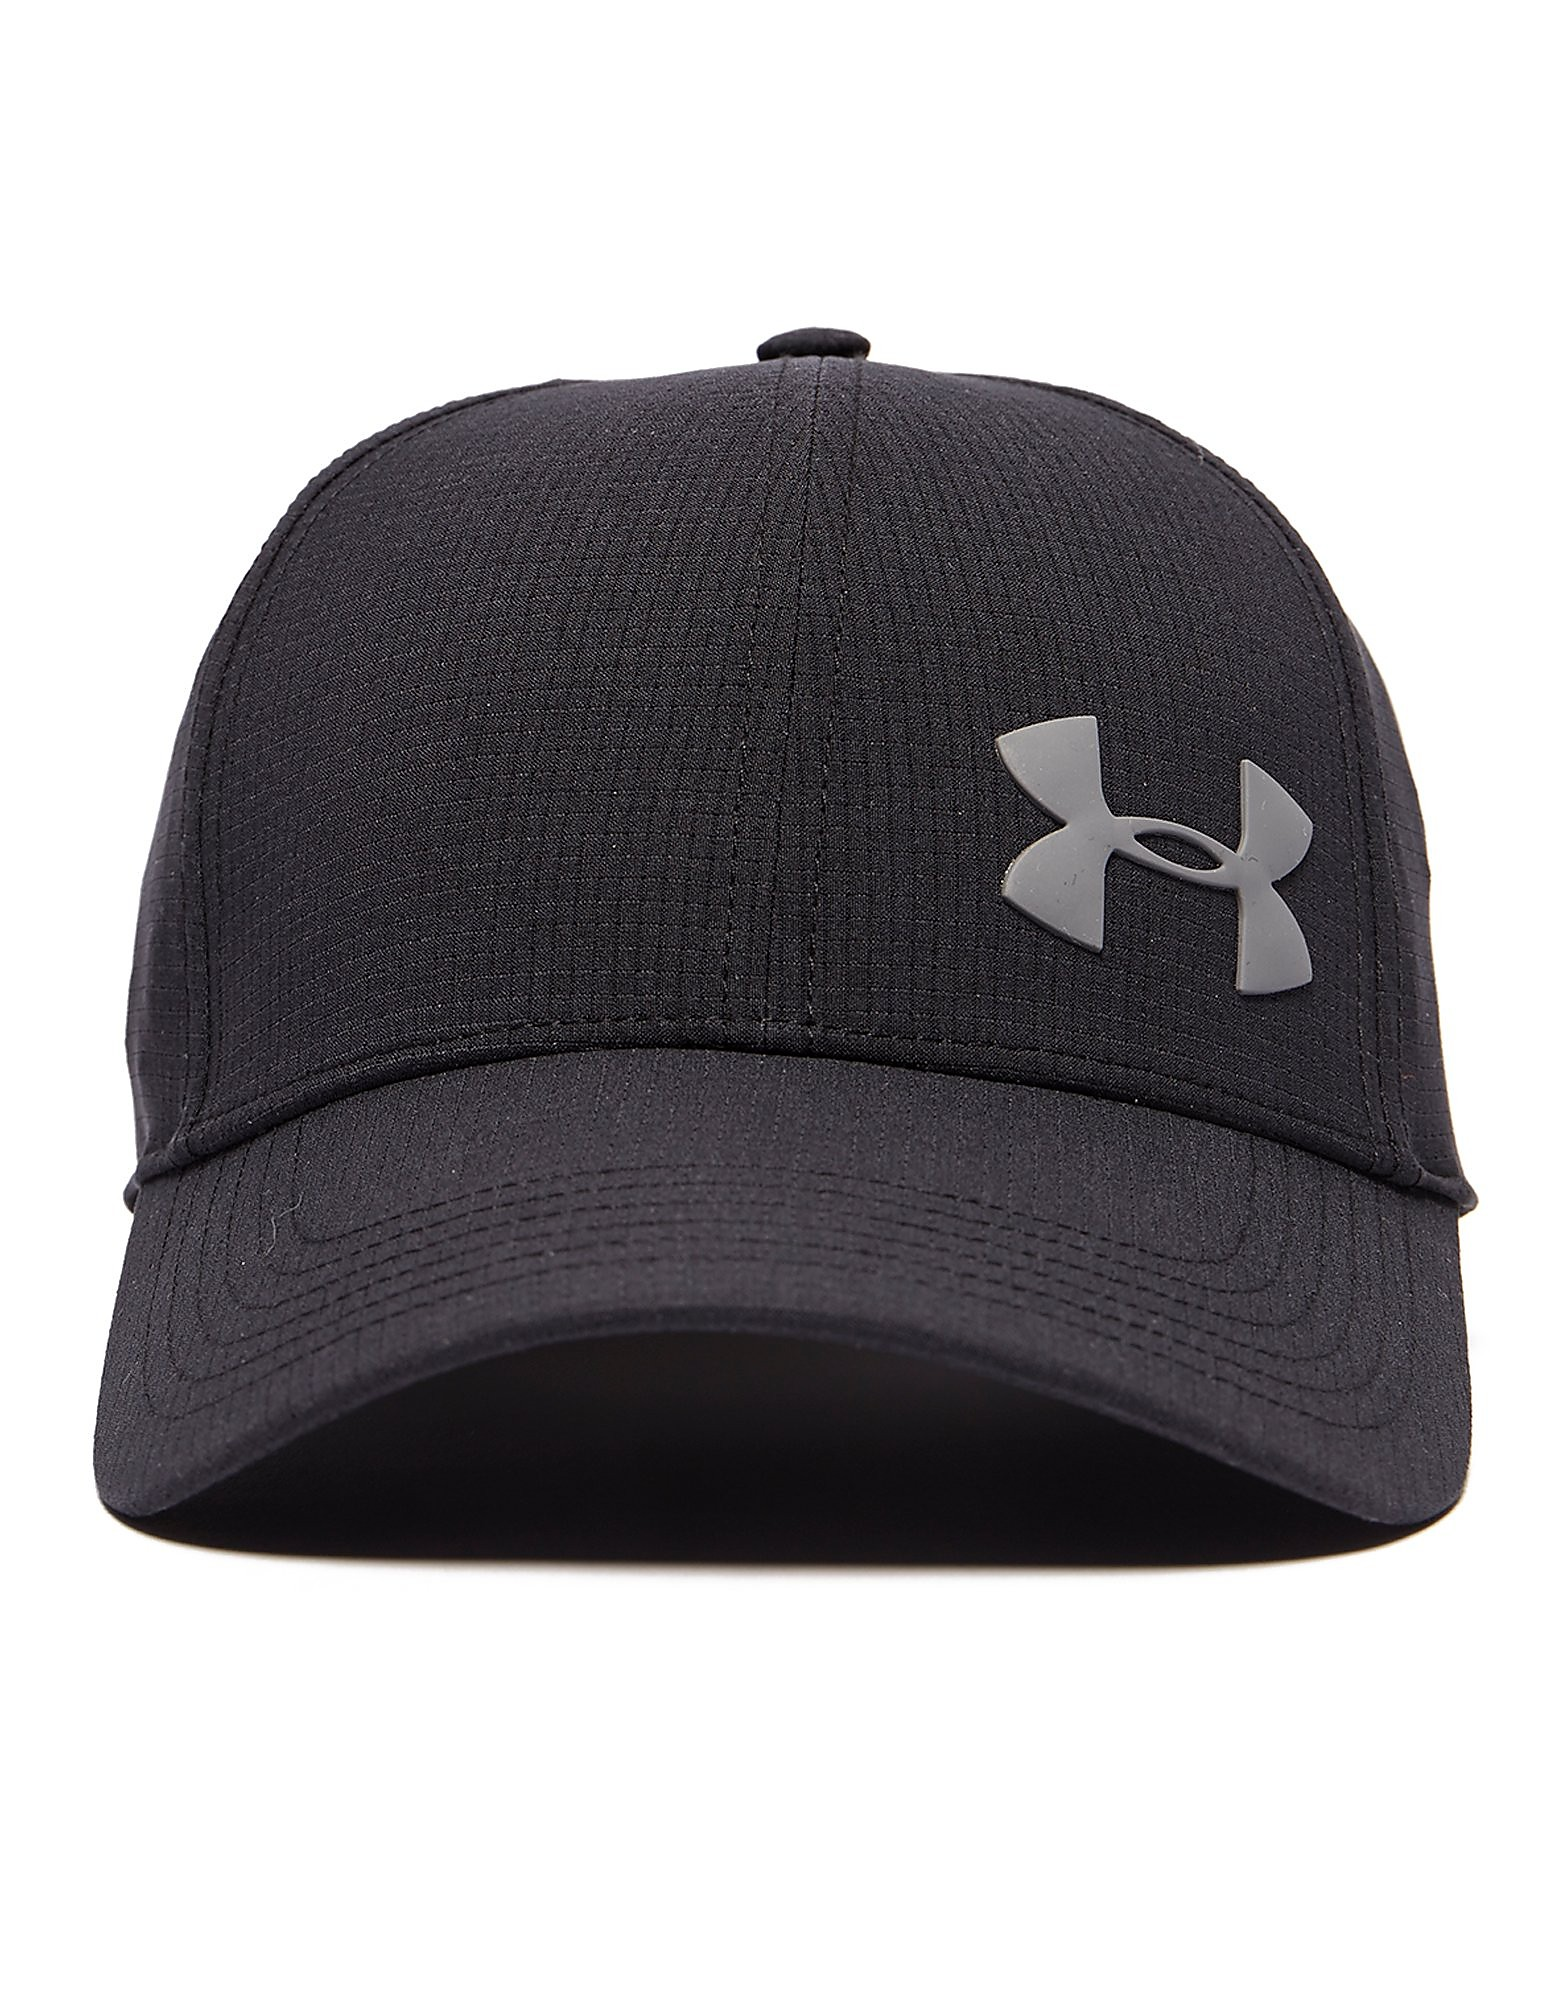 Under Armour ArmourVent Men's Training Cap